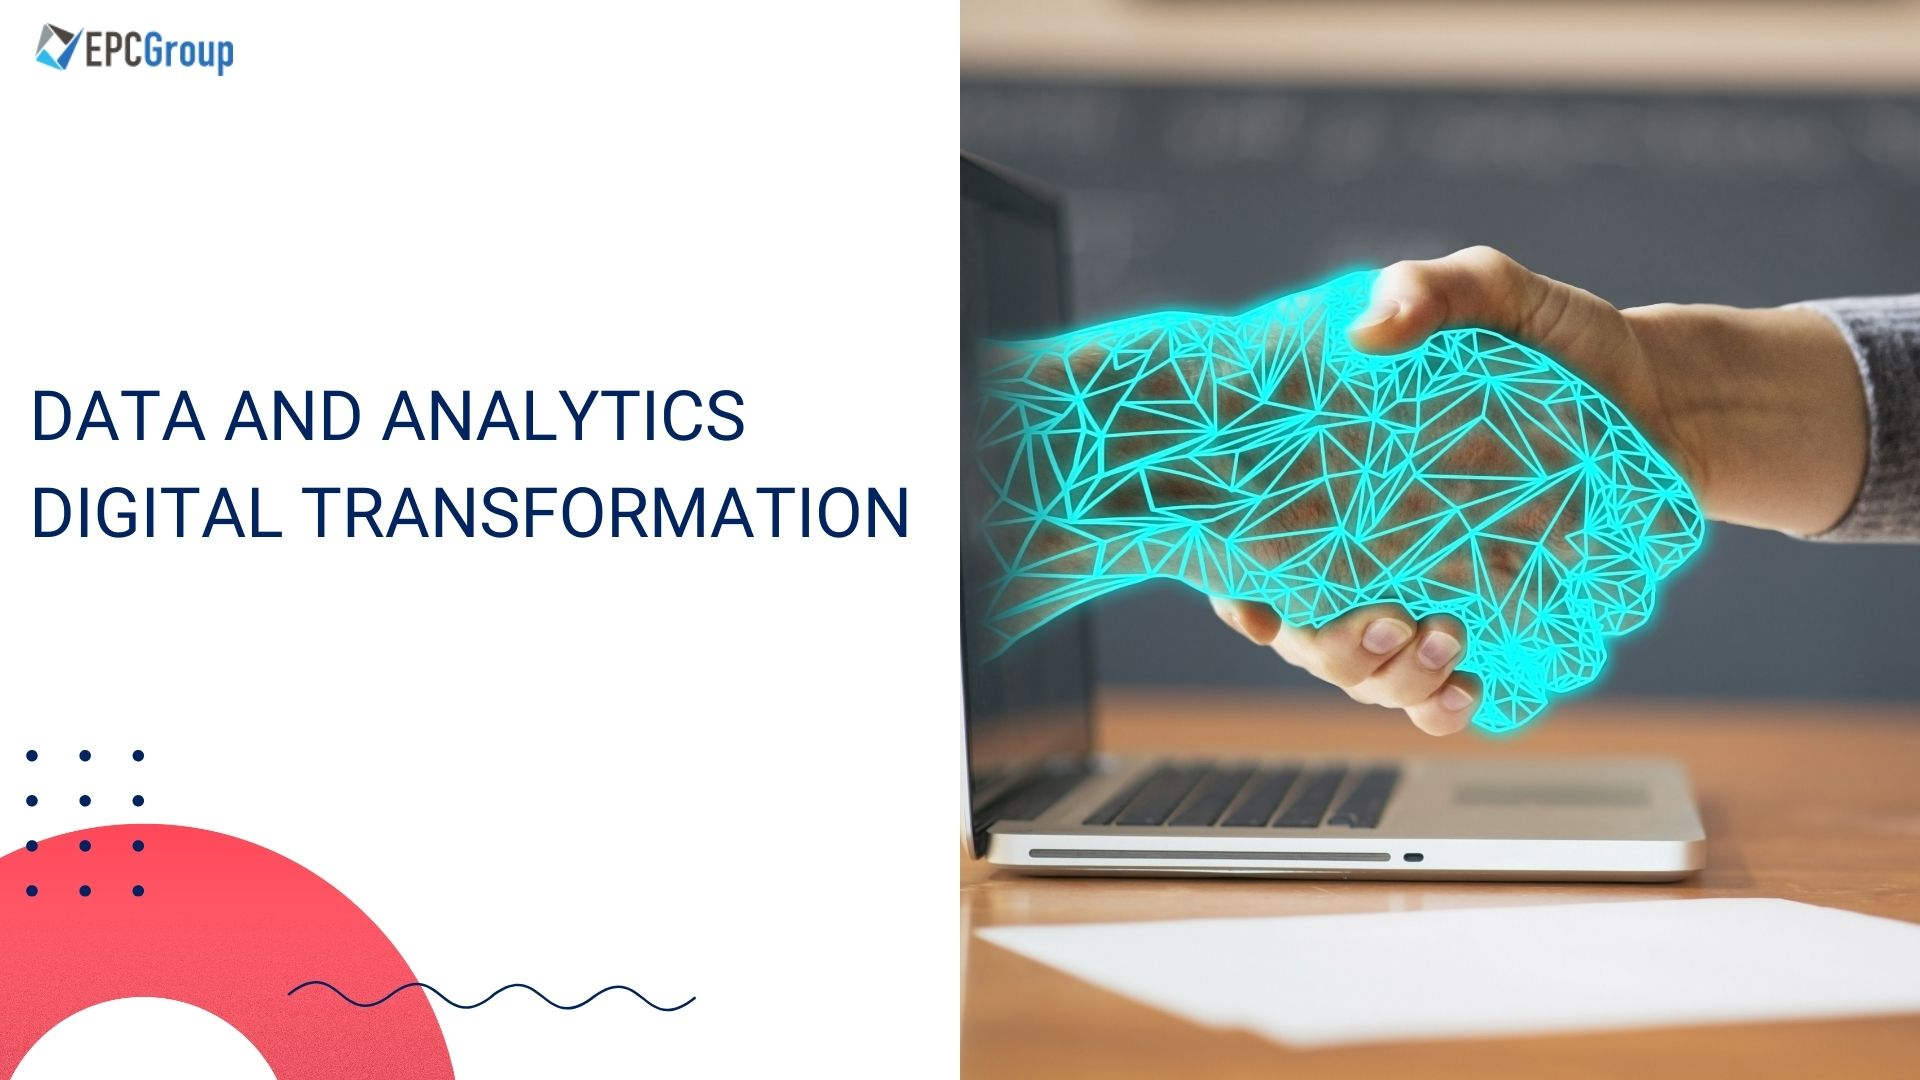 Why Are Data And Analytics Key to Digital Transformation? - thumb image